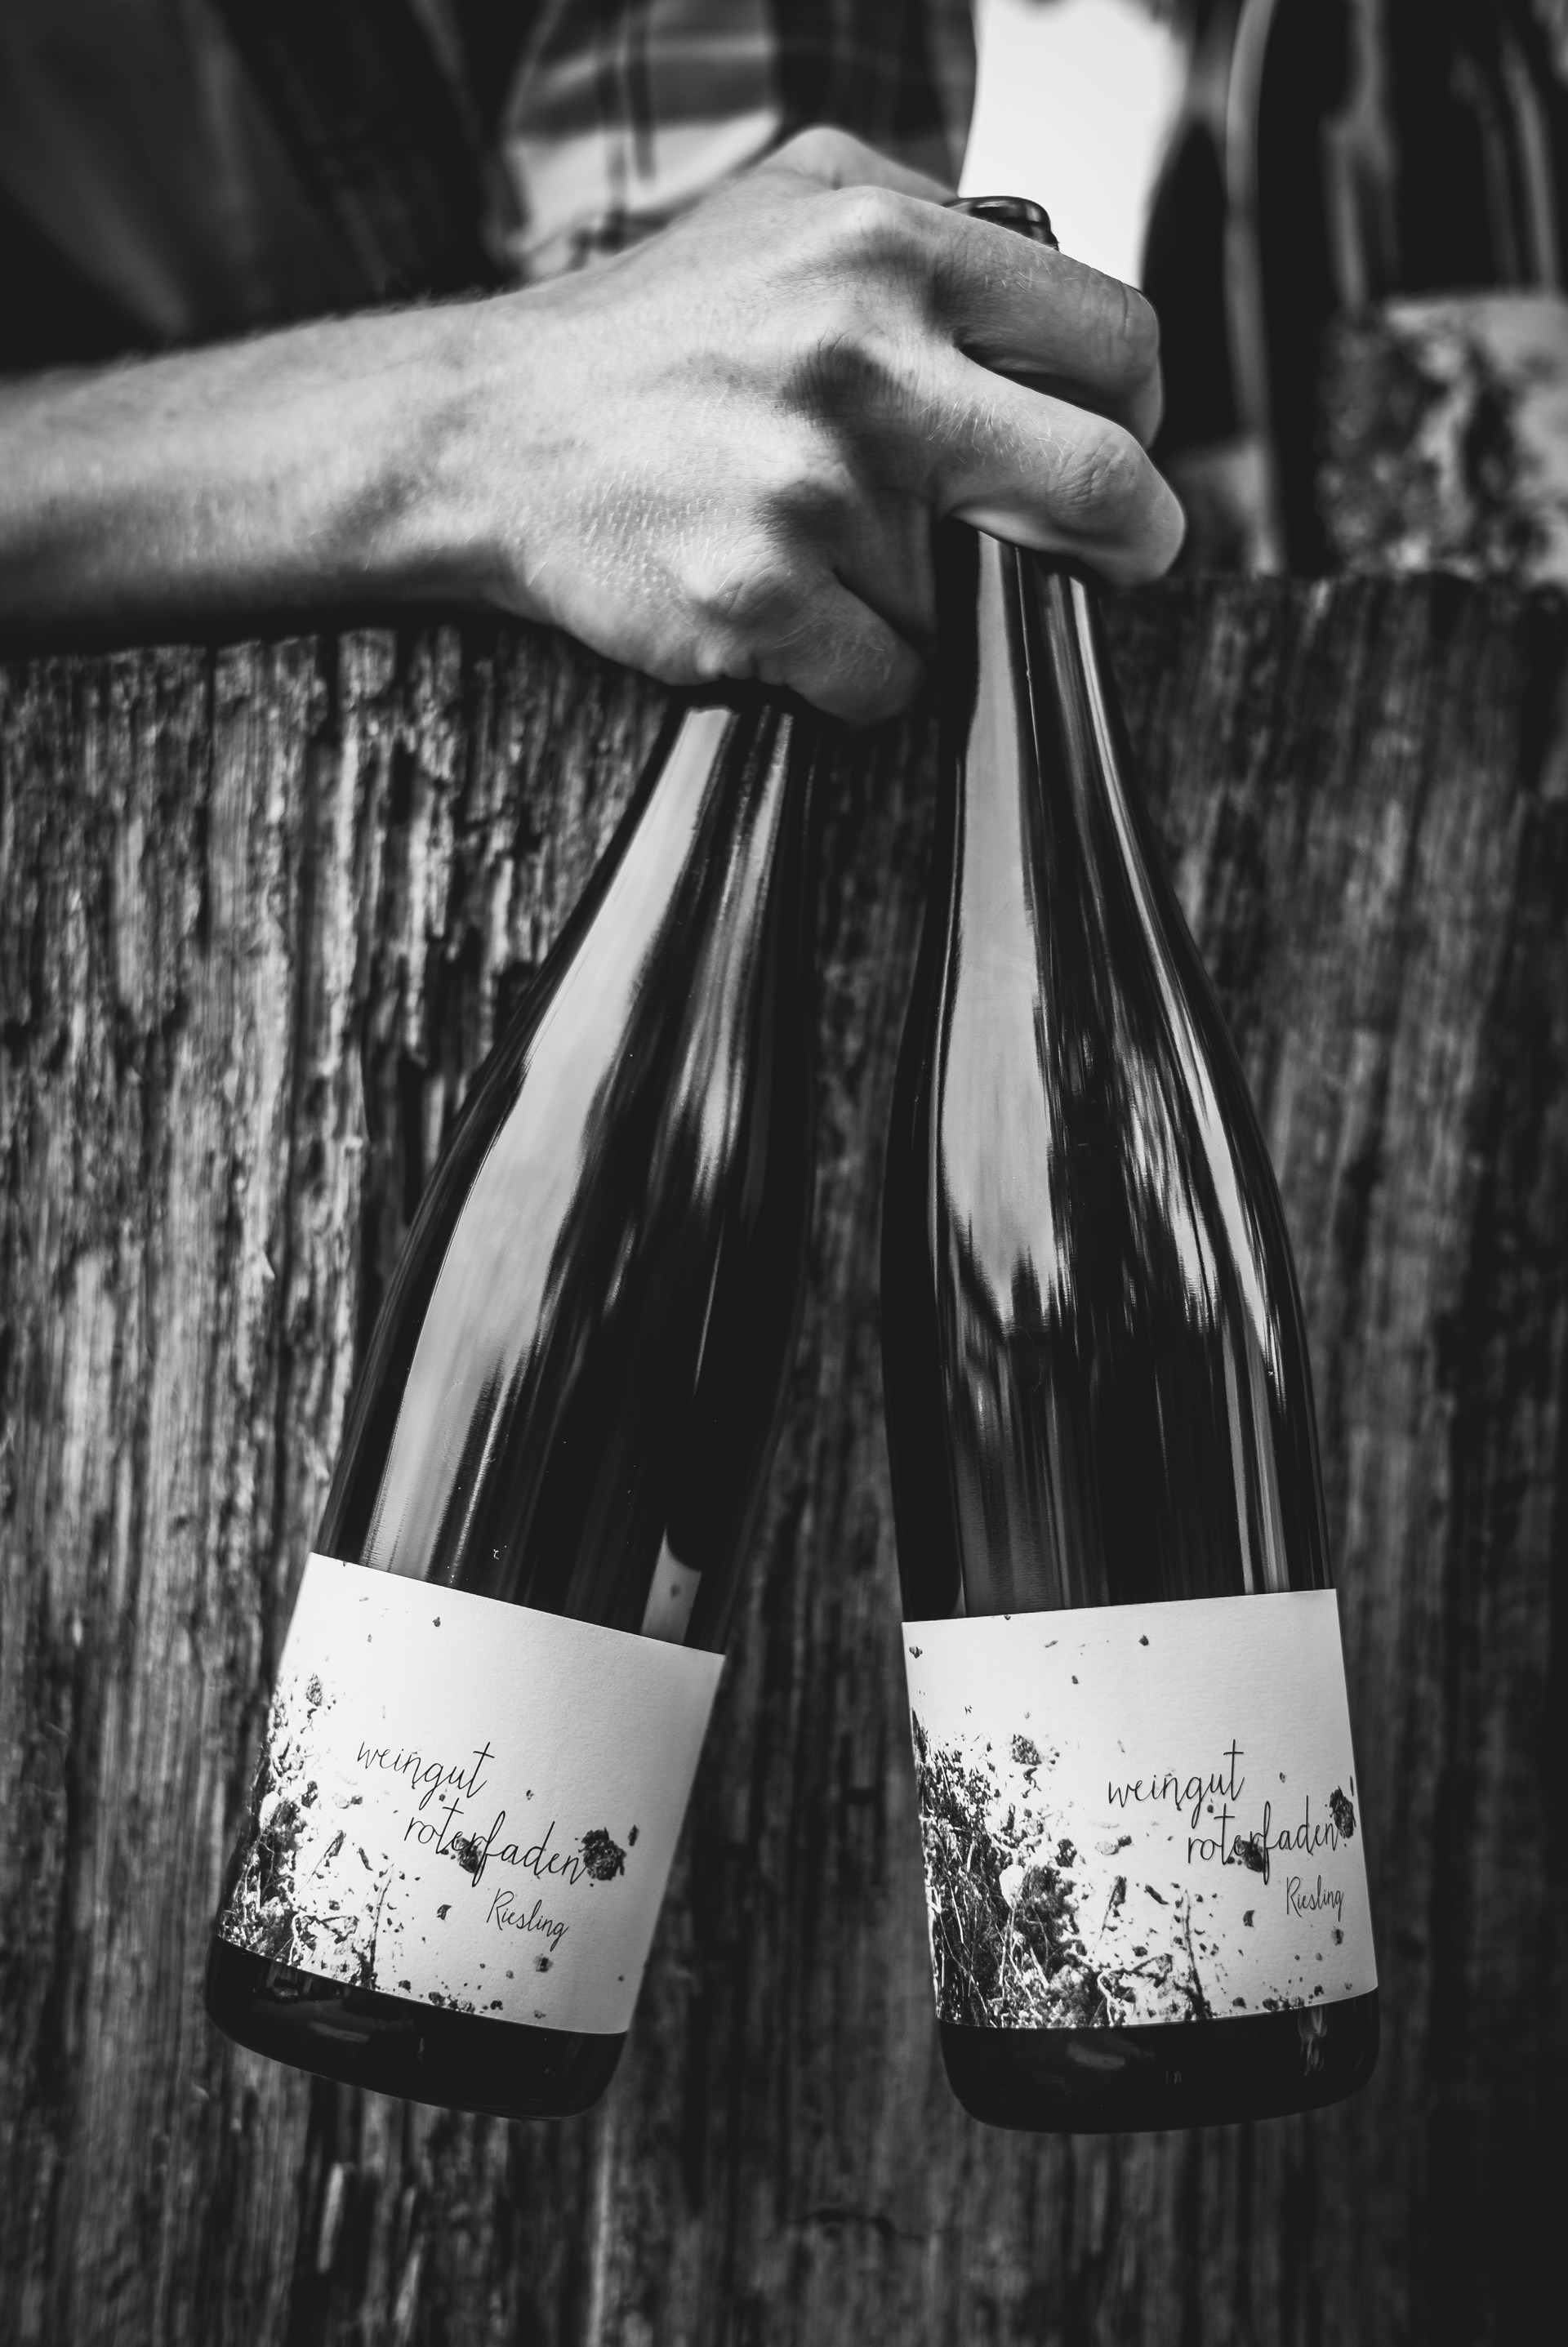 Mark Schulze — Art Direction & Graphic Design weingut roterfaden winery